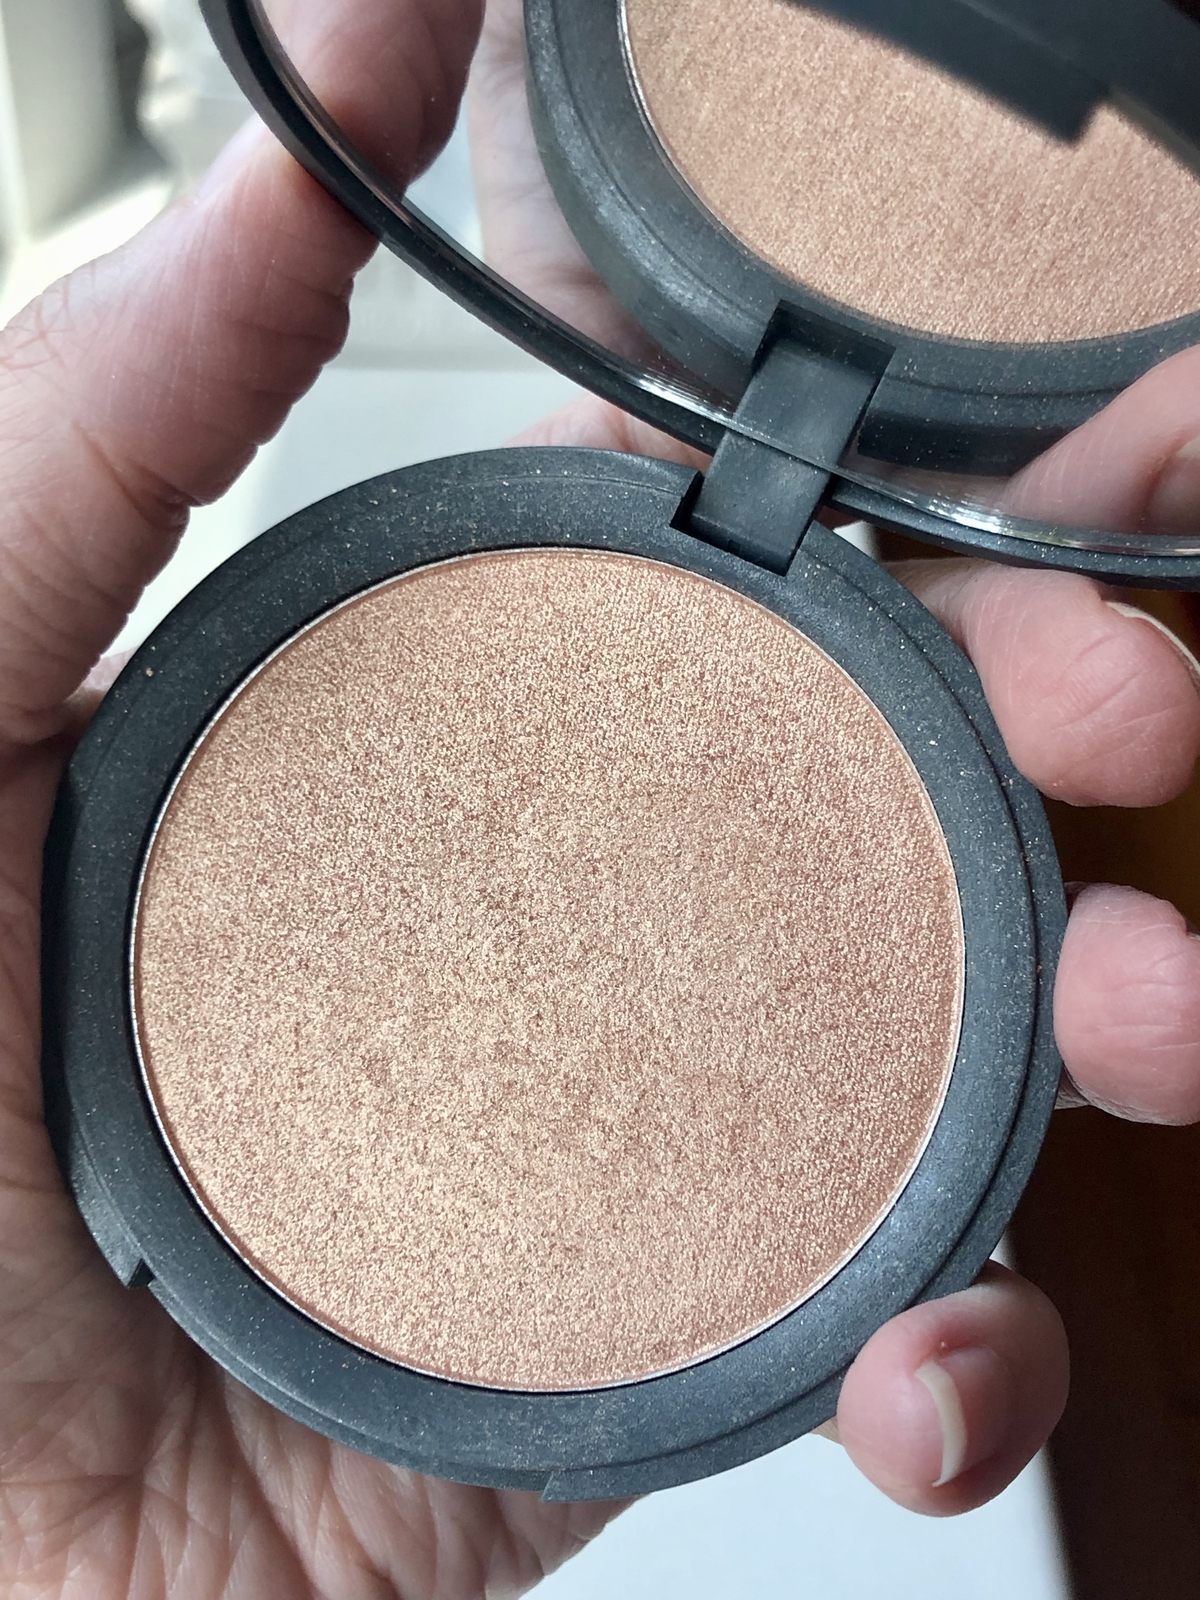 Dome Beauty Luminary Glow Powder Highlighter in Majestic